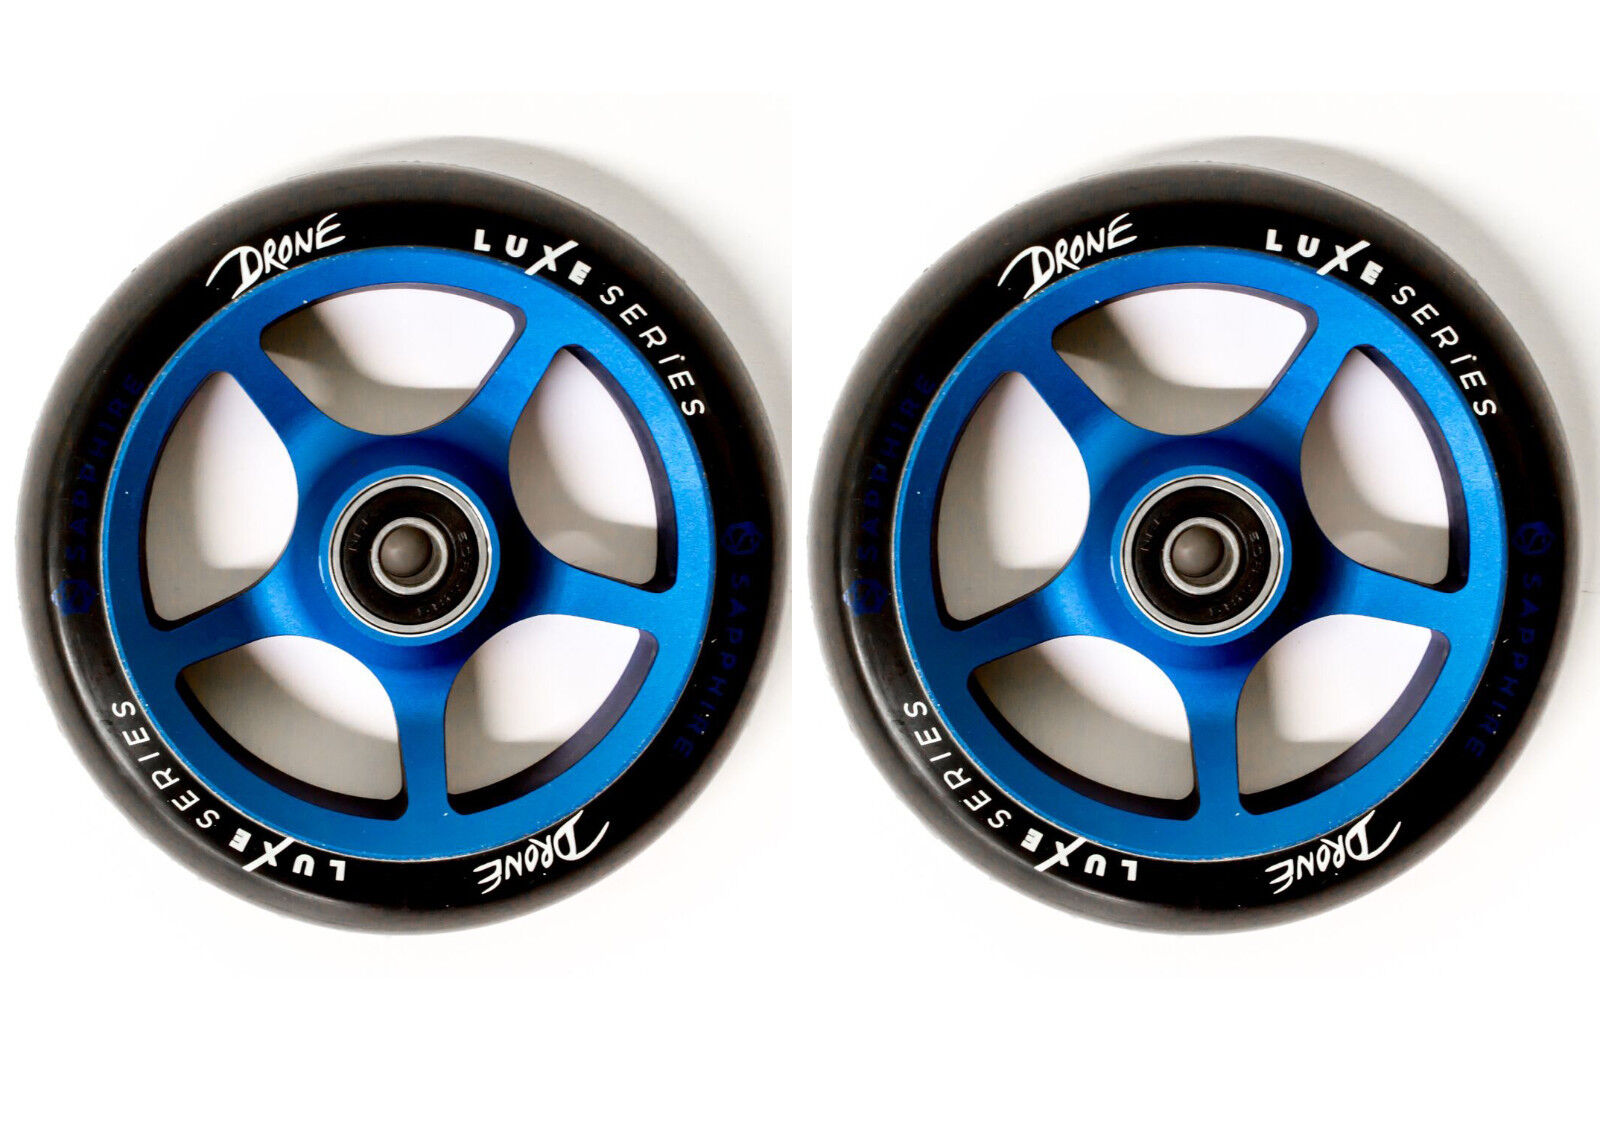 Drone Luxe Stunt Scooter Wheels 120mm Pair + Bearings - - - Sapphire acbb16